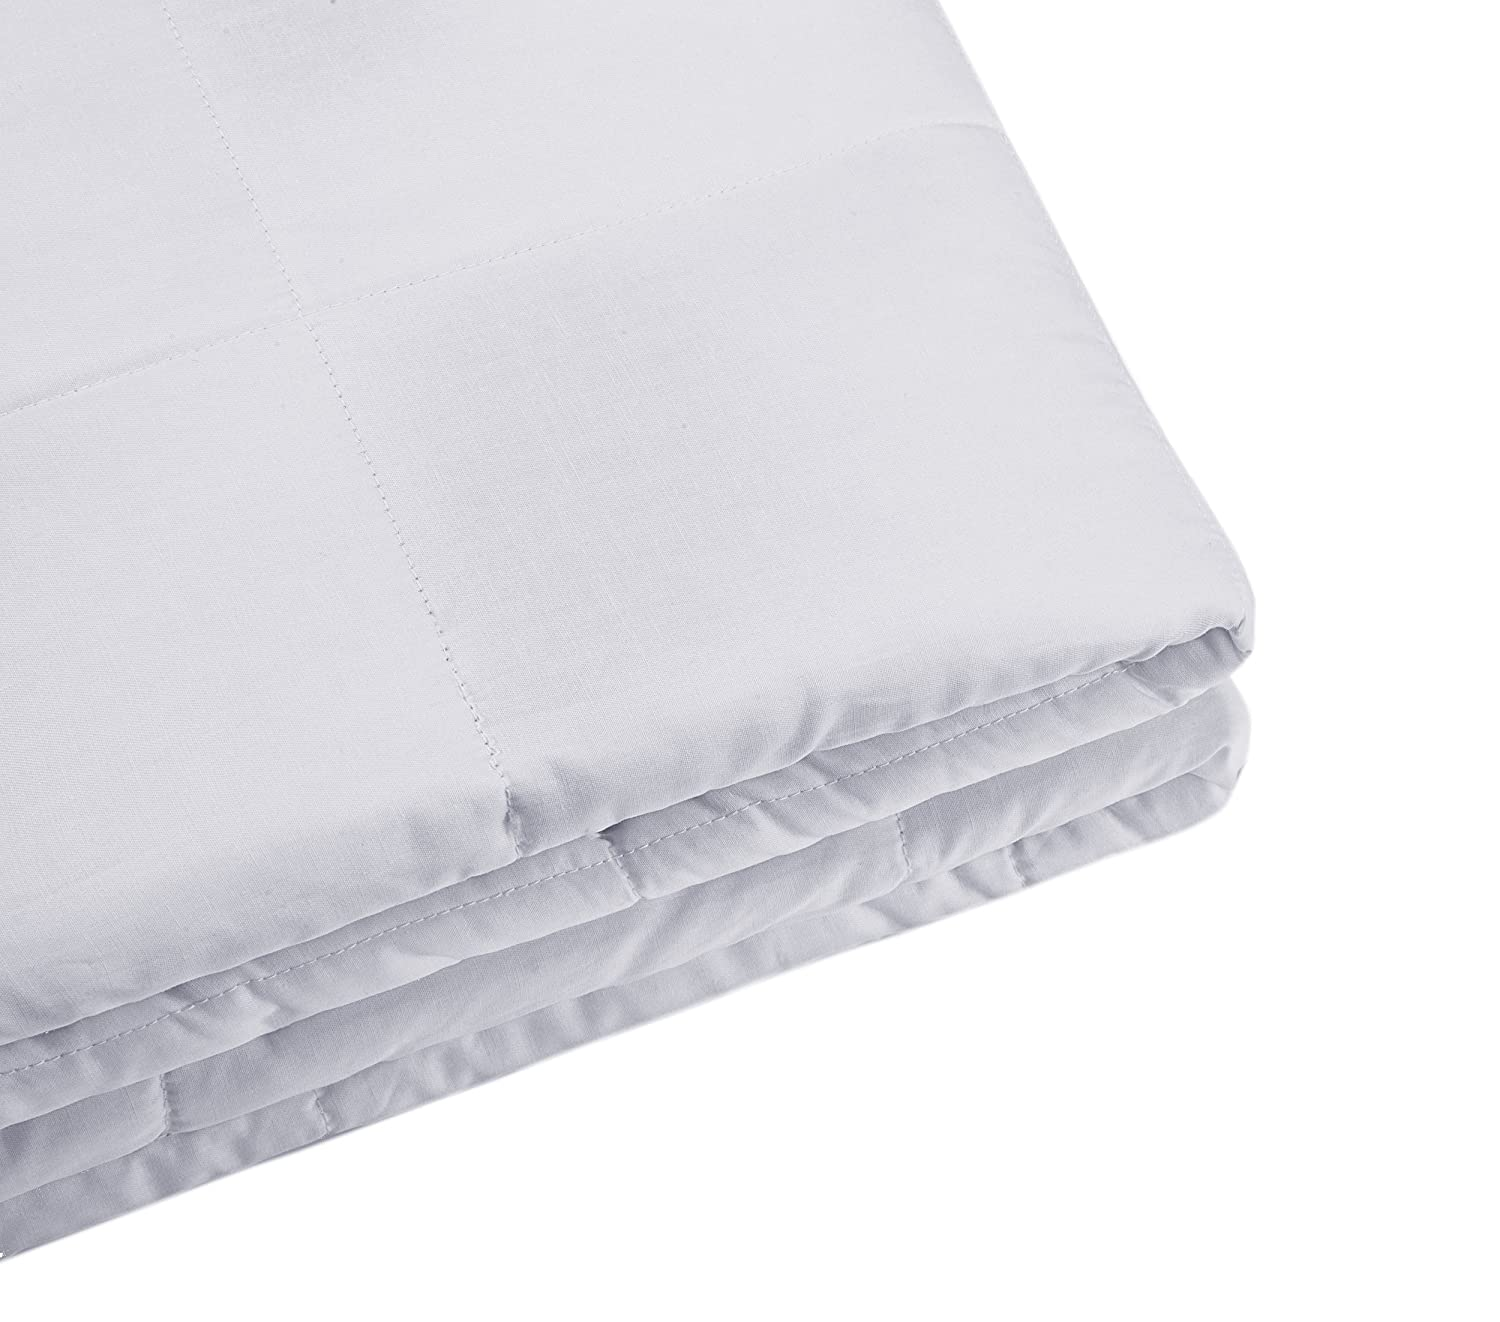 60 x 80 15lbs DreaCom Weighted Blanket for Adults /& Teens Upgrade Heavy Blanket Natural Cotton with Glass Beads Fall Asleep Faster